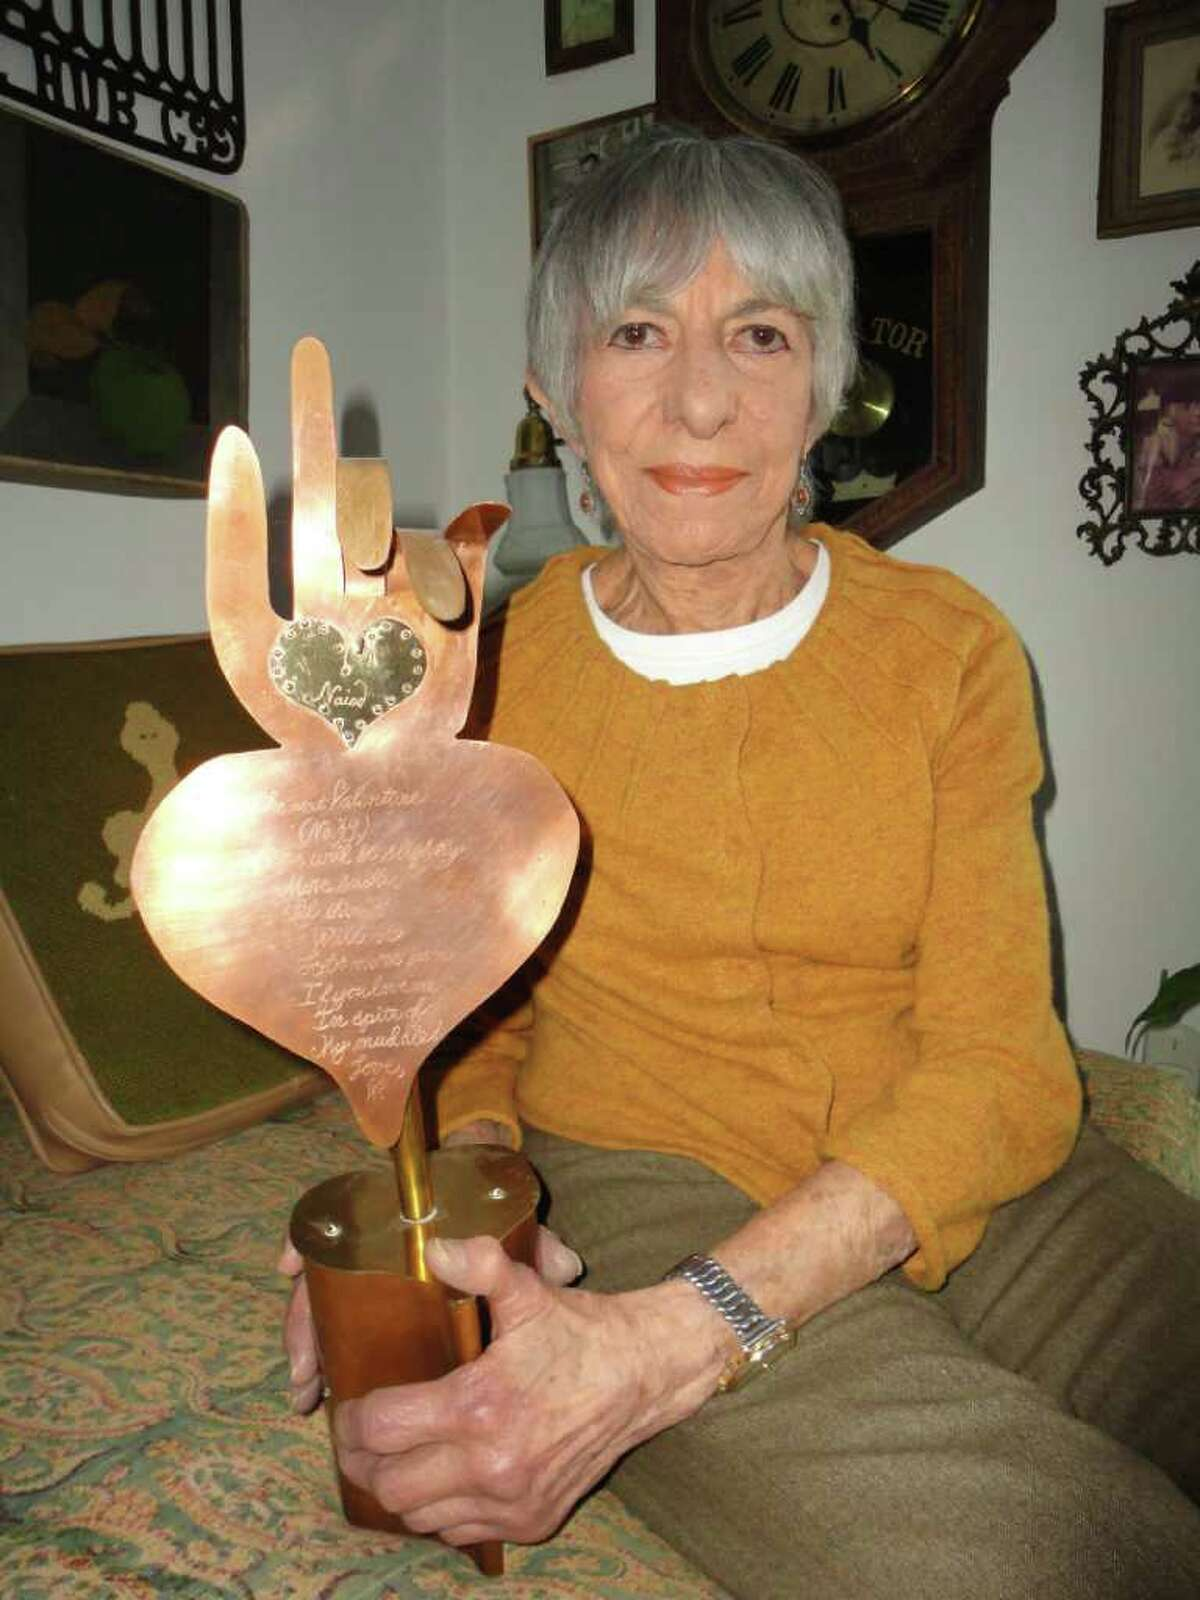 """Westport artist Naiad Einsel holds one of the metal sculptures her husband Walter made for her for Valentine's day after he had suffered a stroke. It asks her to love him """"in spite of my muddle."""""""